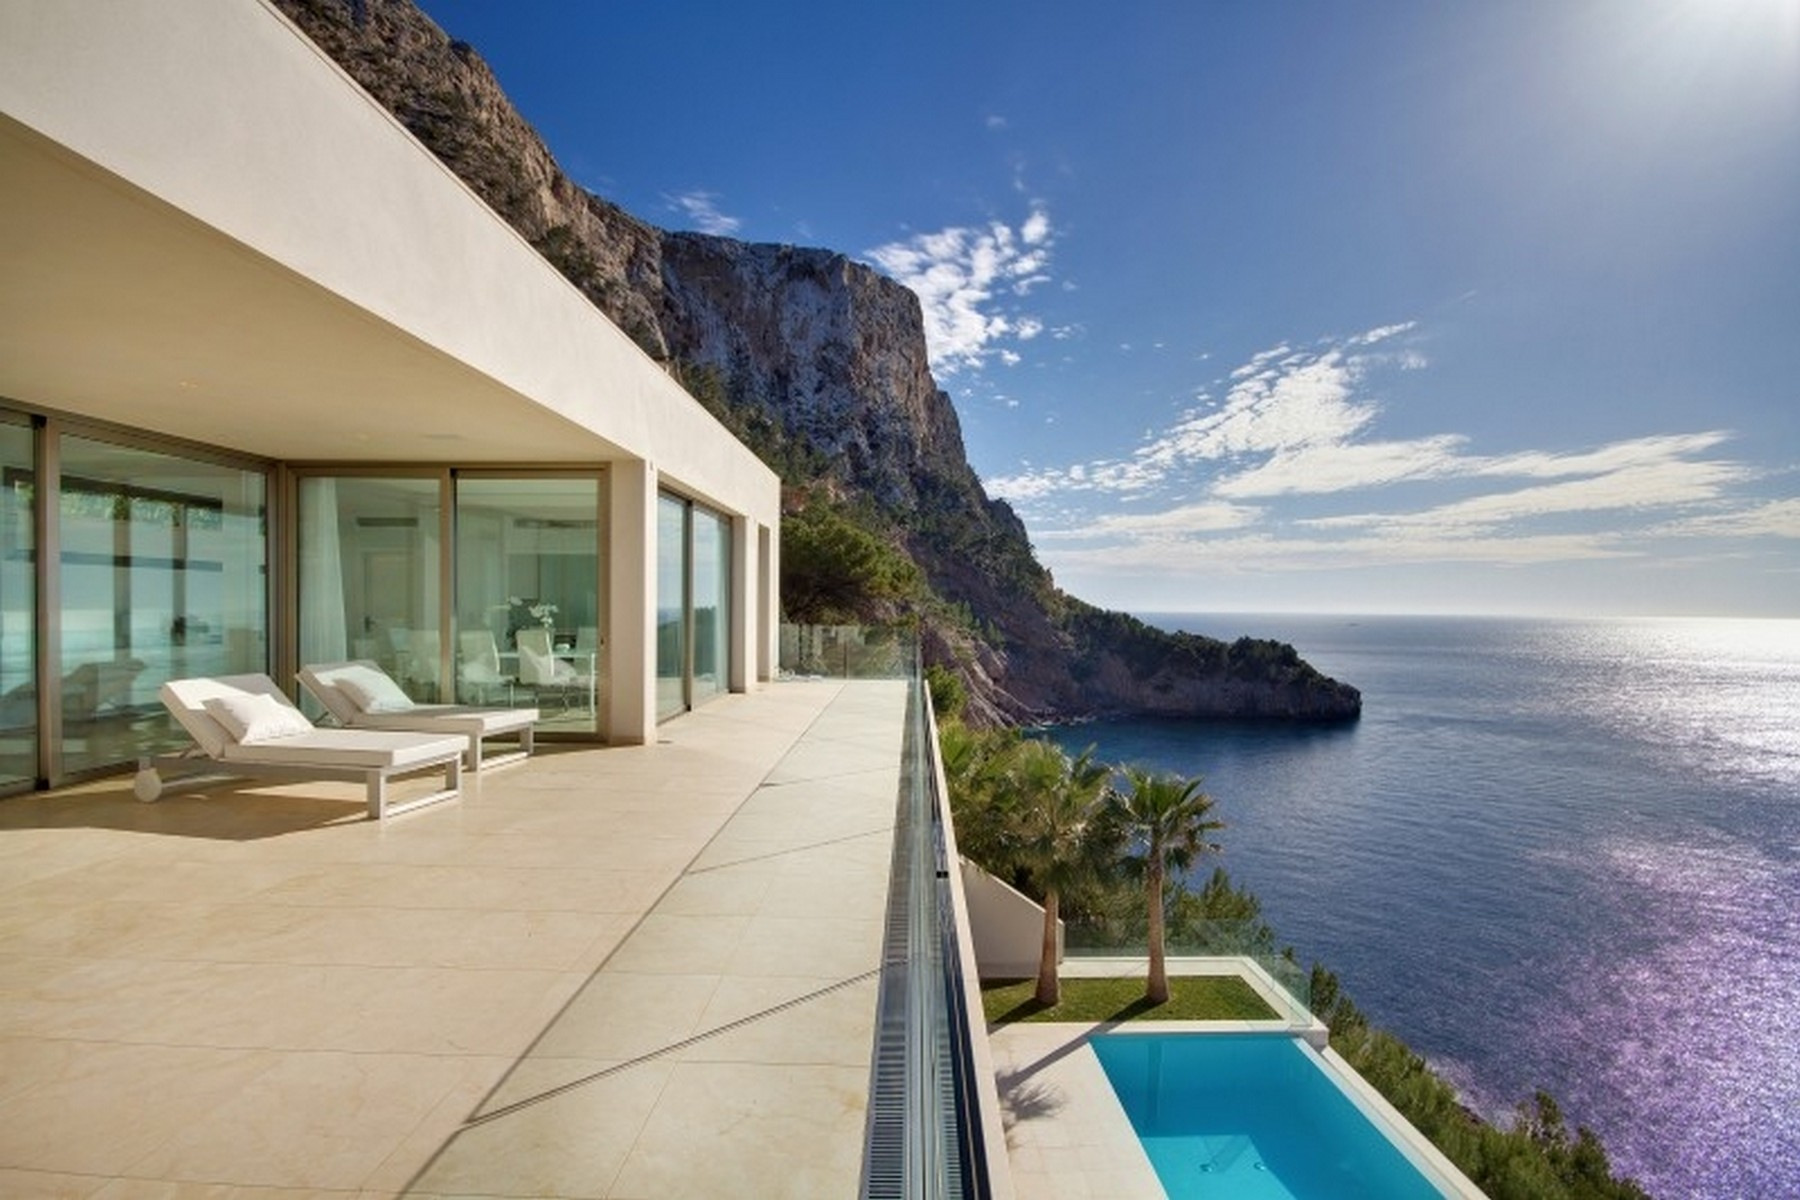 Single Family Home for Sale at Modern Villa with sea access in Port Andratx Port Andratx, Mallorca, Spain